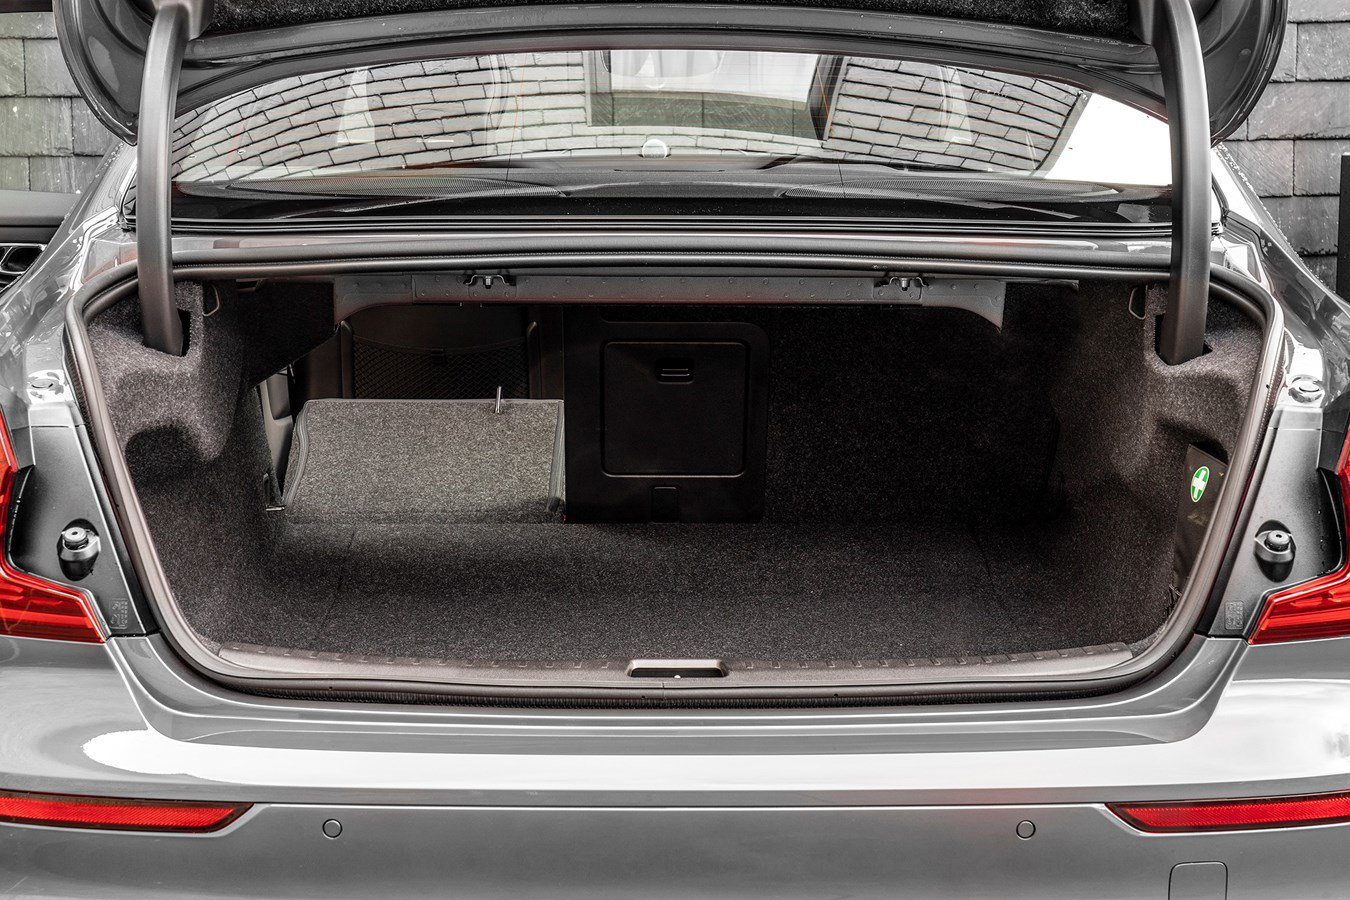 2019 Volvo S60 luggage space